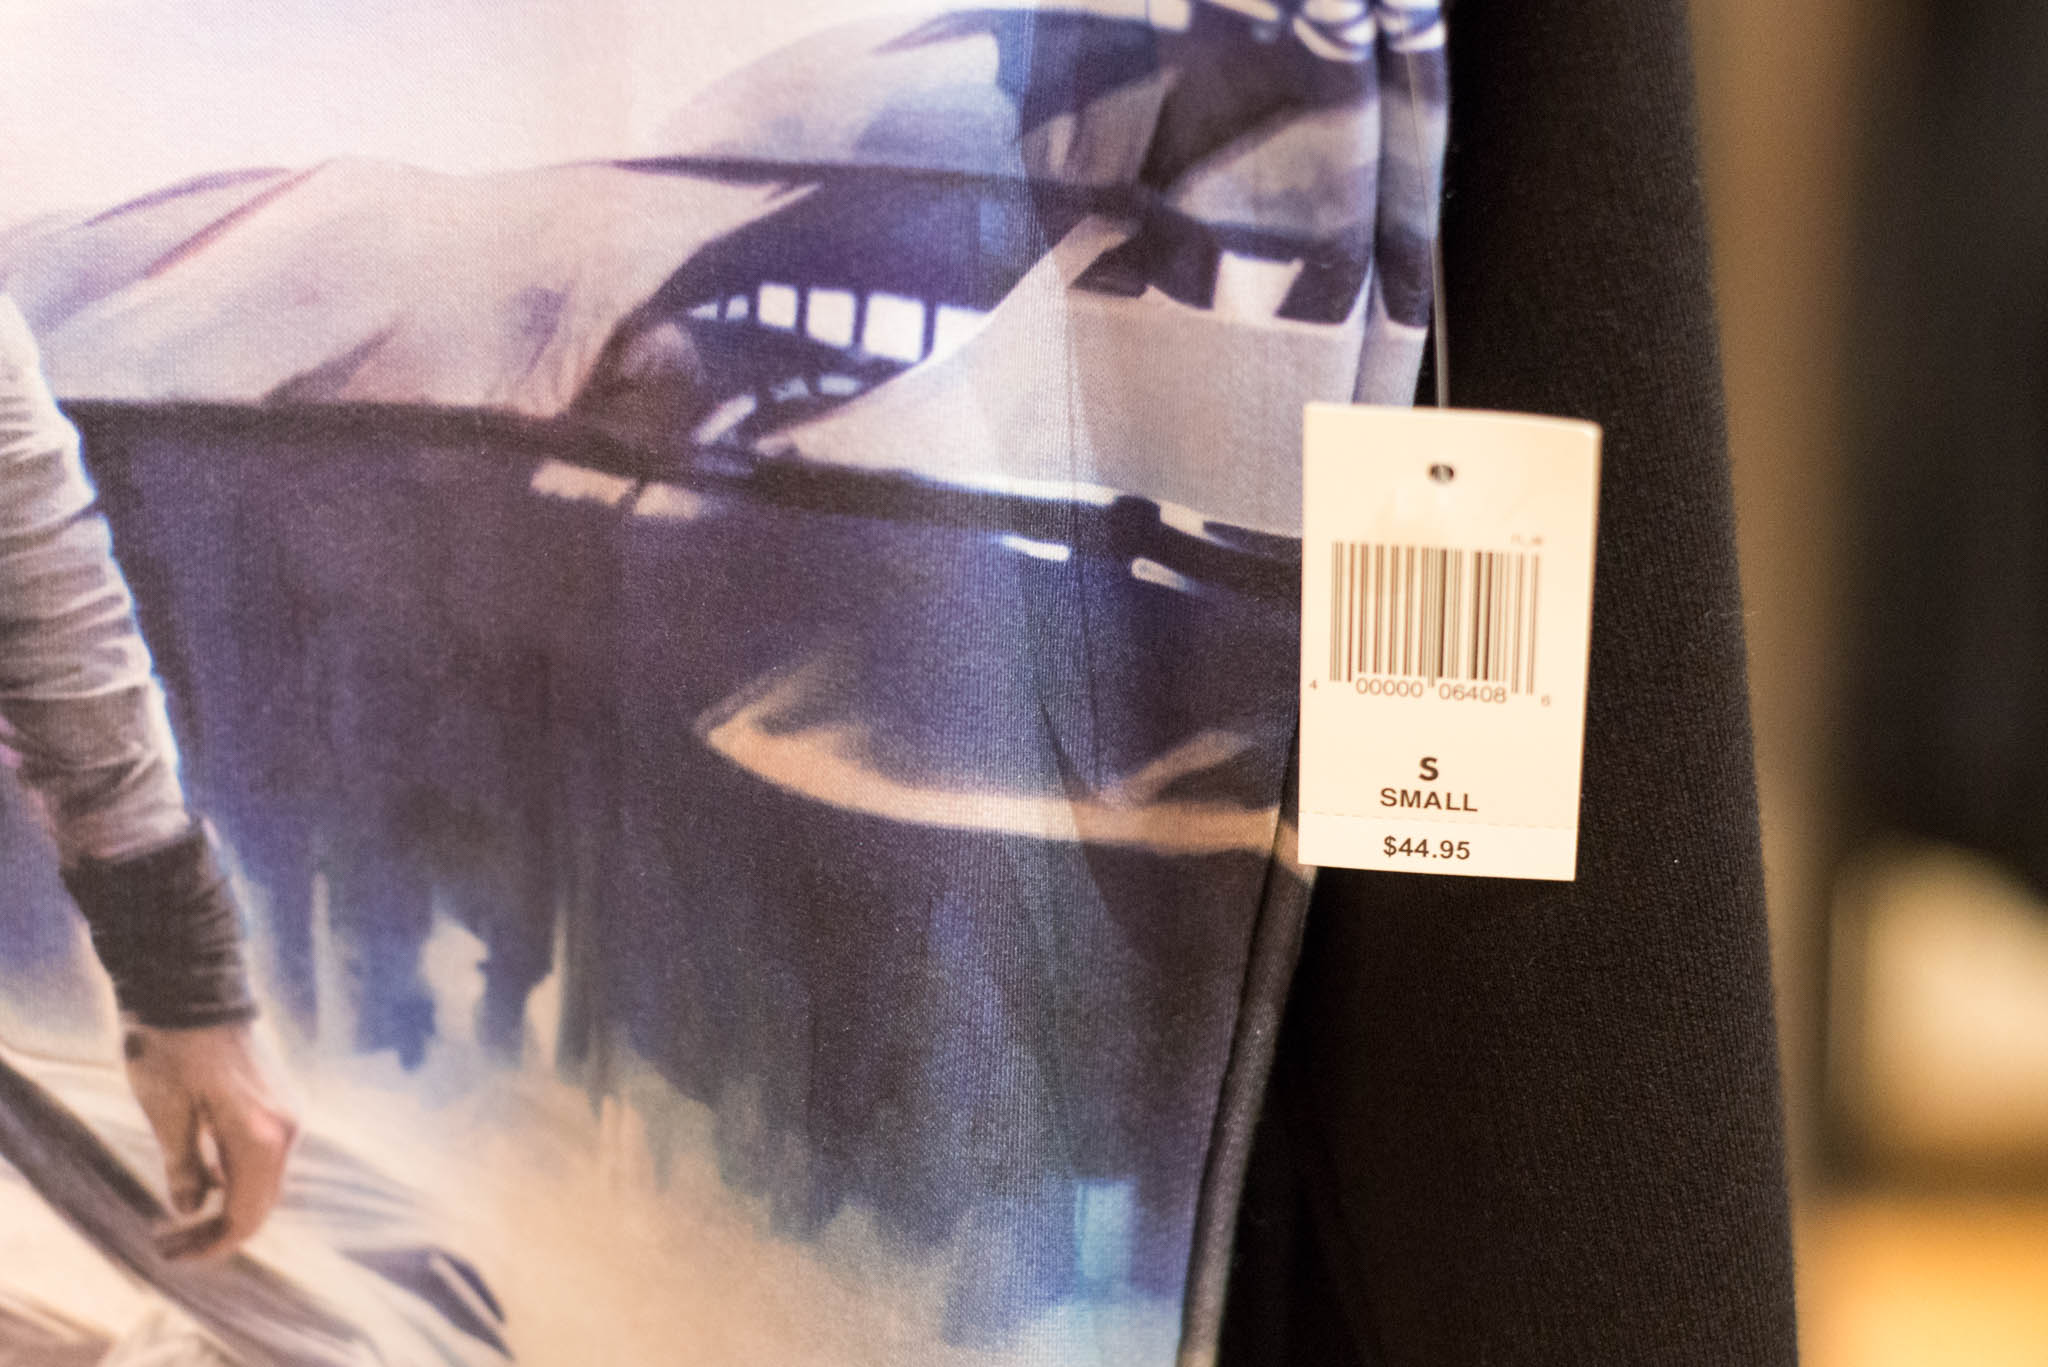 Star Wars Rey Shirt - Price Tag